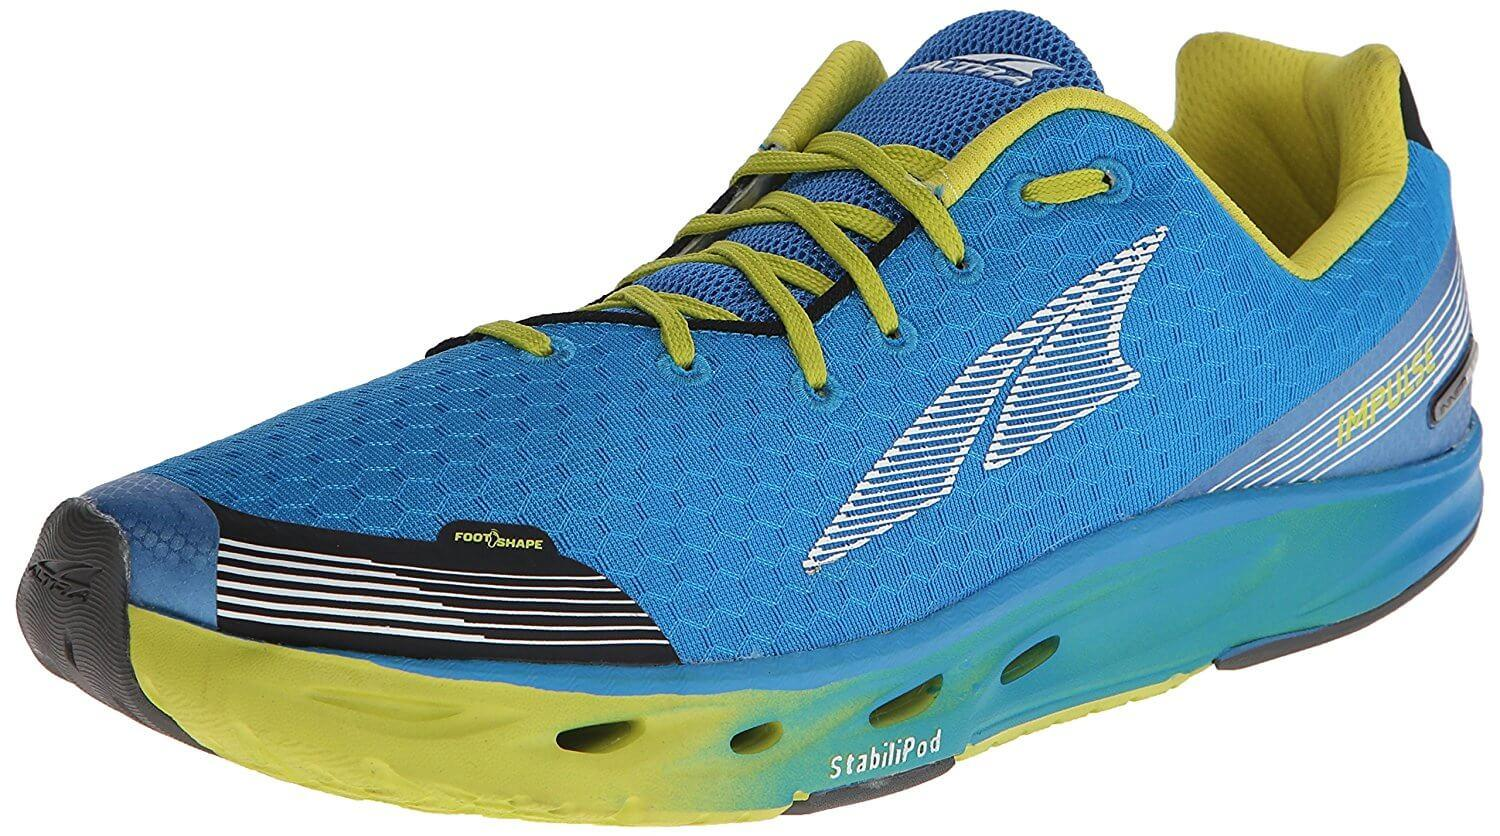 Tthe Altra Impulse shown from the front/side.